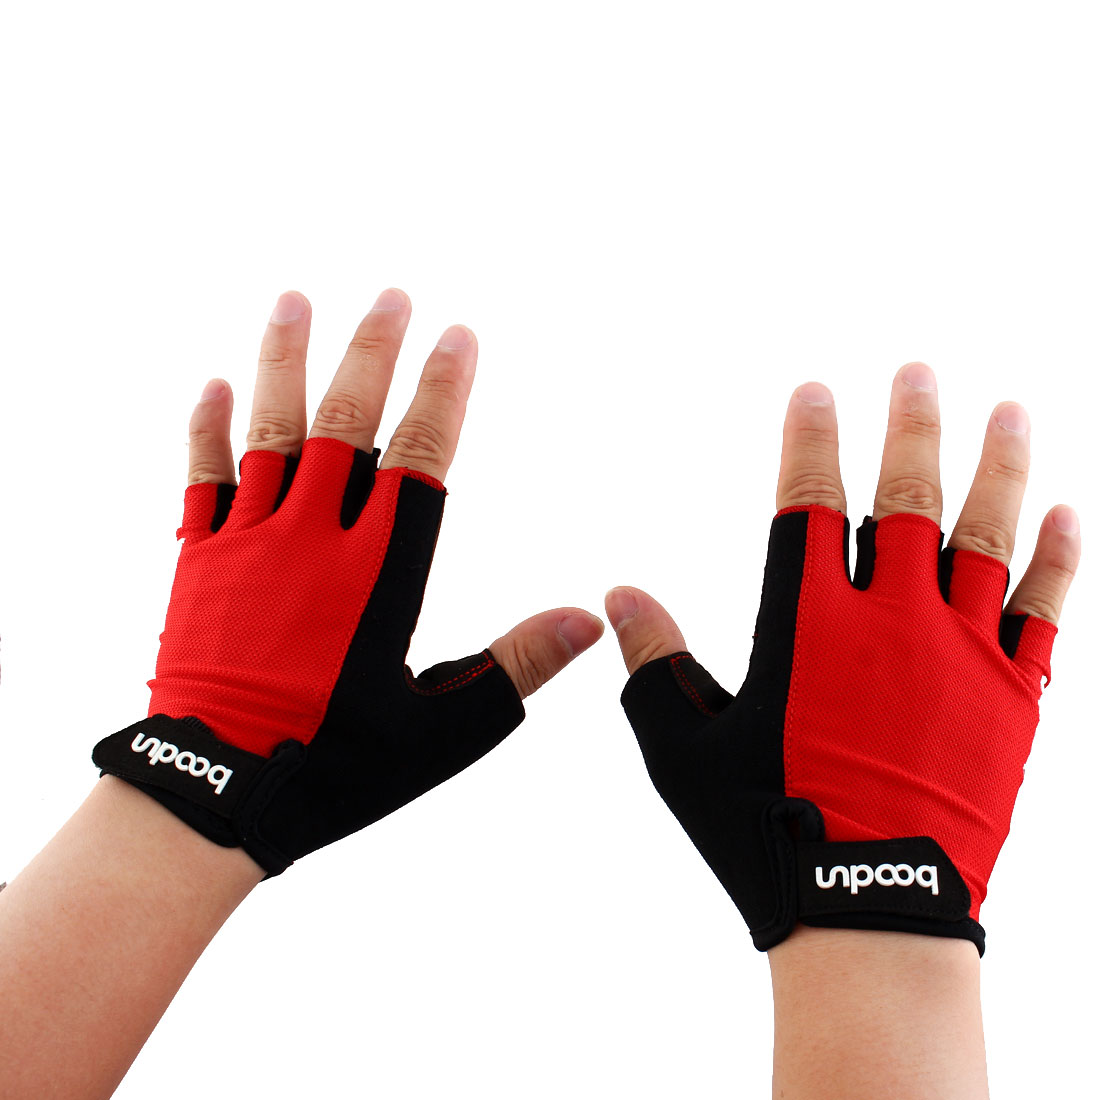 Boodun Authorized Outdoor Cycling Gym Workout Training Weight Lifting Half Finger Gloves Red Size M Pair for Men Women